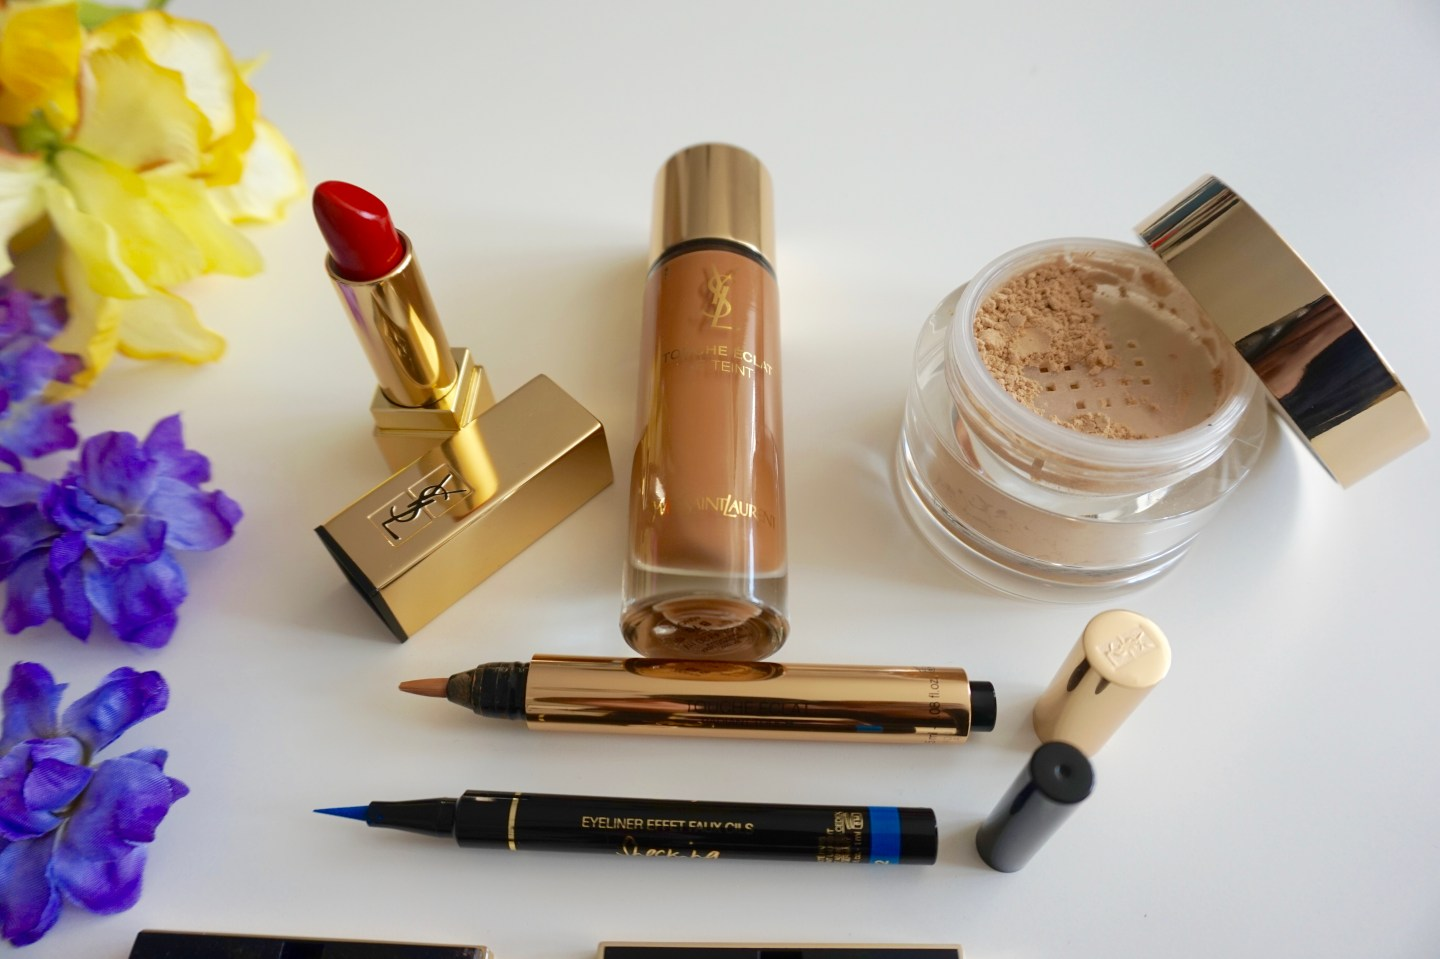 gold-ysl-beauty-yves-saint-laurent-beauty-haul-raychel-says